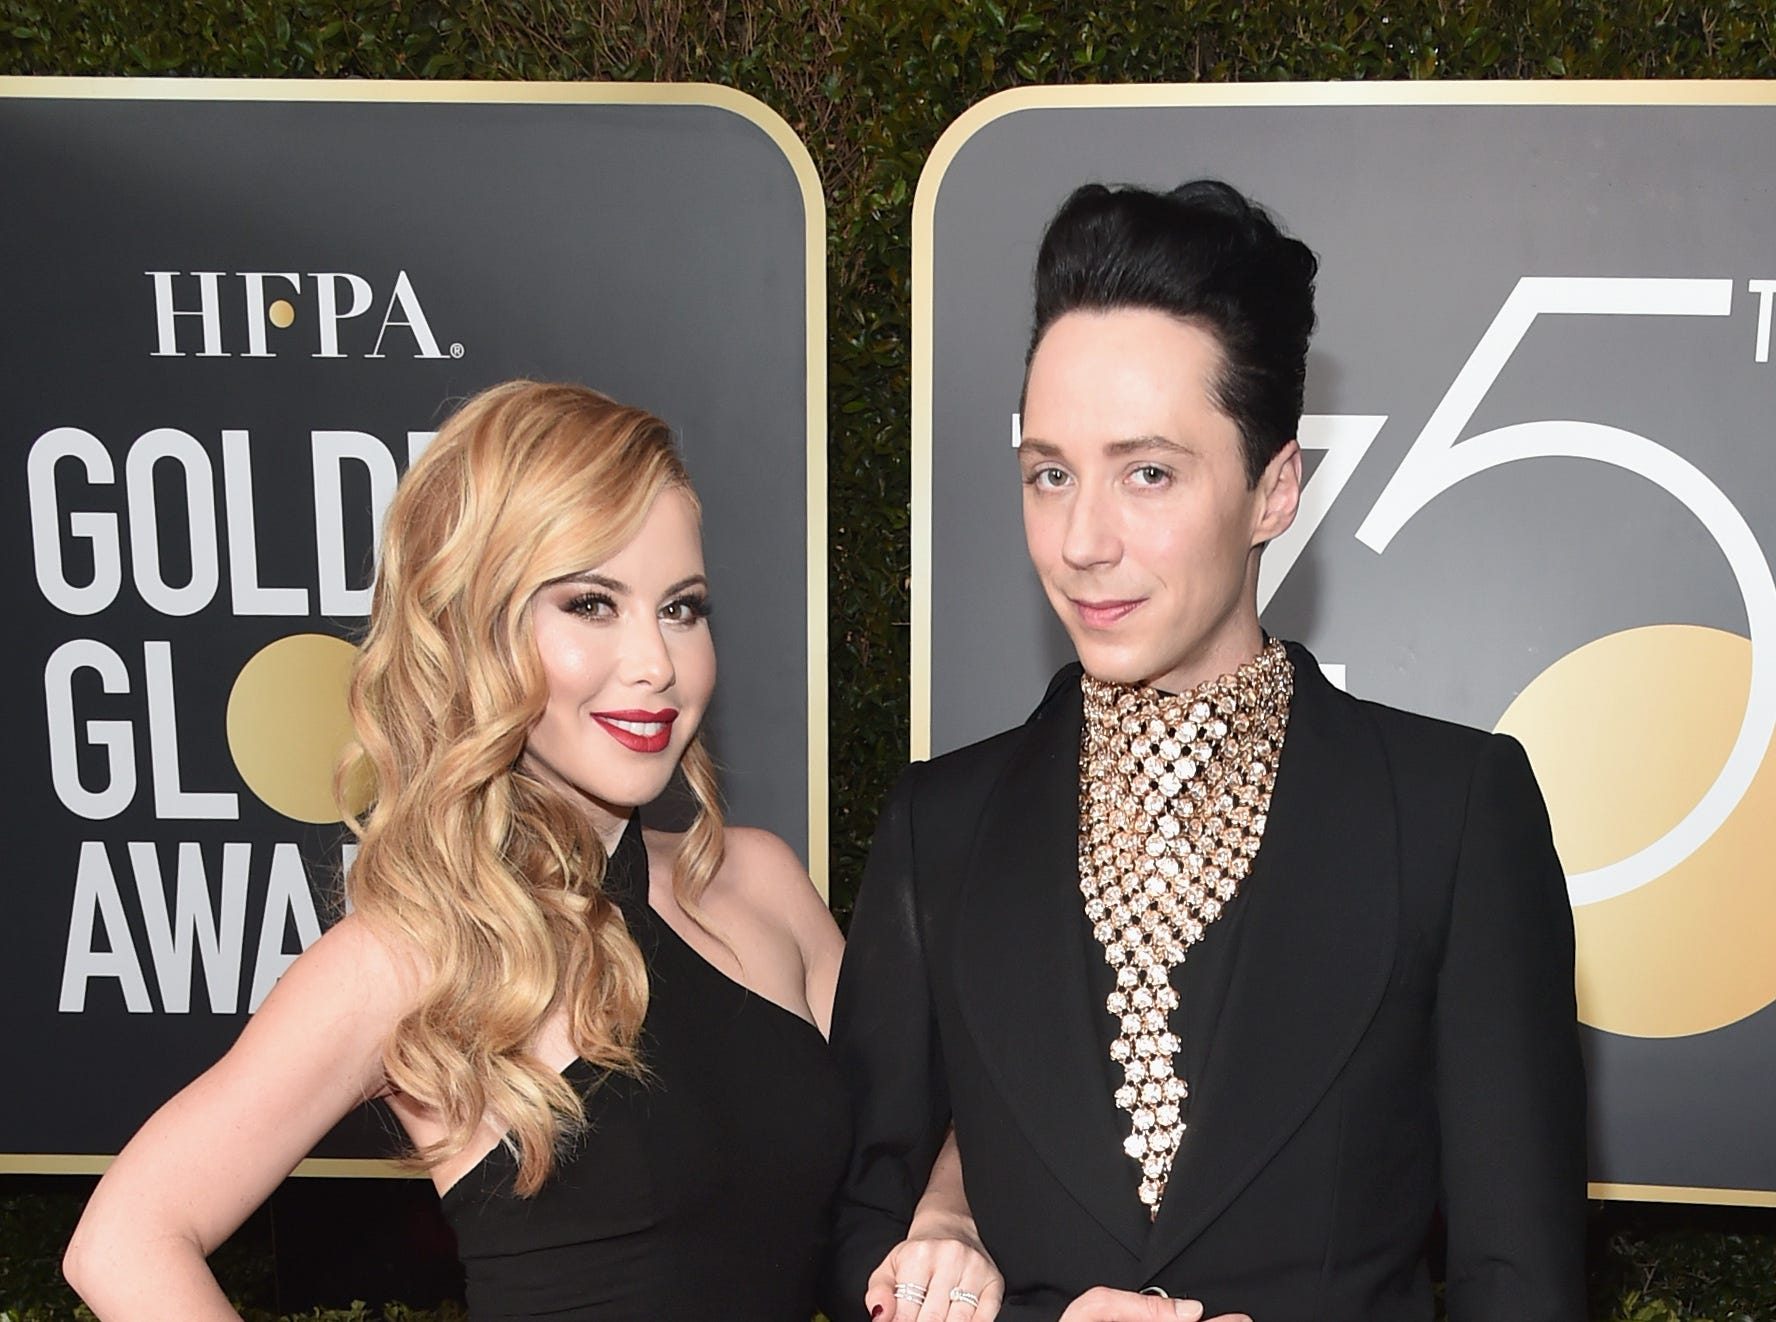 Figure skaters Tara Lipinski and Johnny Weir attend The 75th Annual Golden Globe Awards at The Beverly Hilton Hotel on January 7, 2018 in Beverly Hills, California.